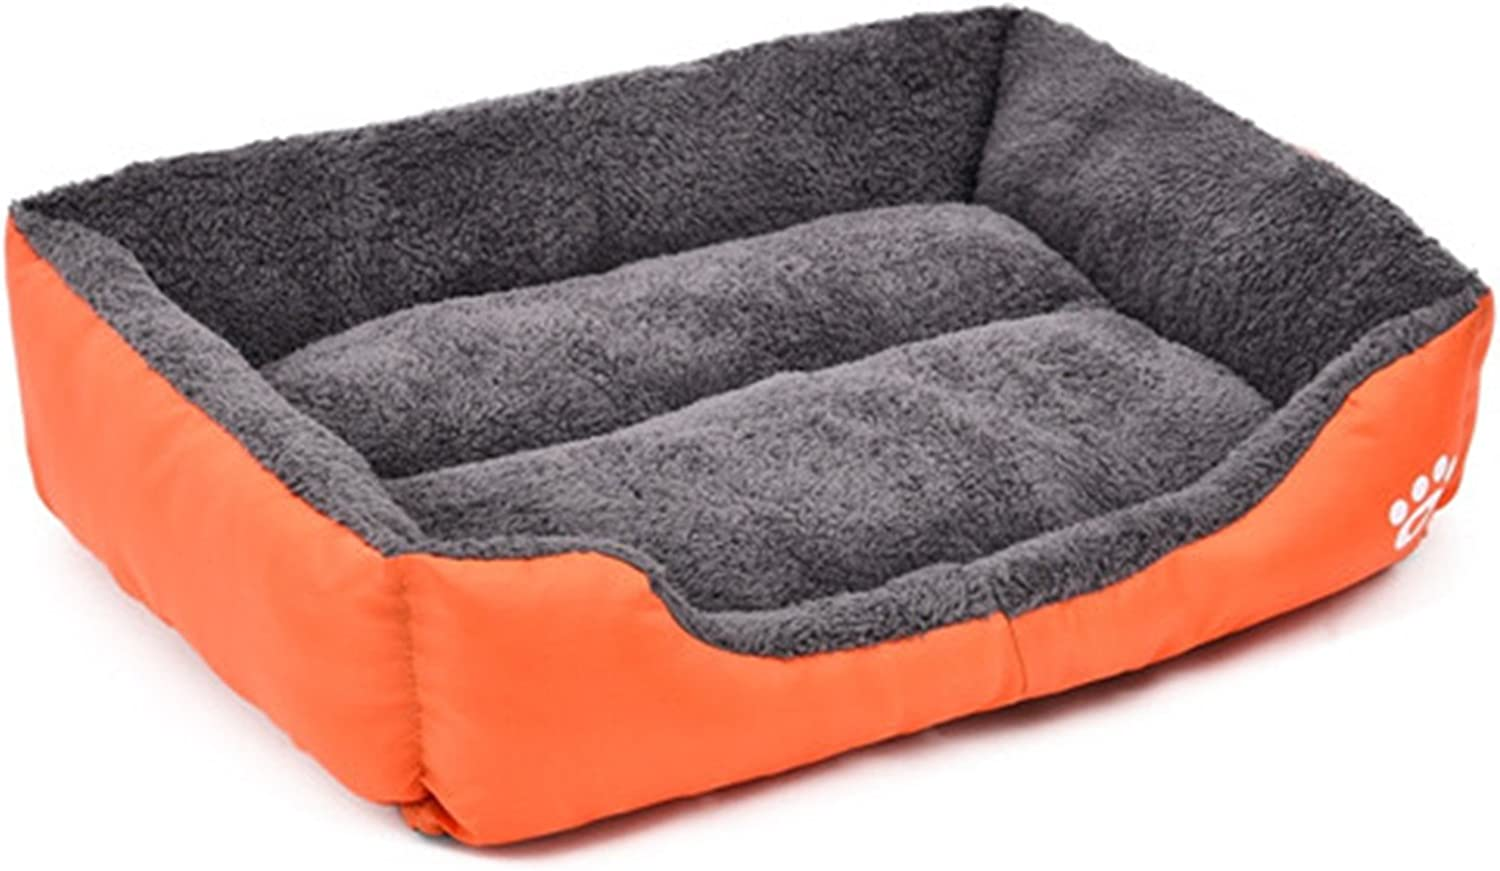 Feroni Pet Dog Bed Warming Dog House Soft Material Pet Nest Candy colord Dog Fall and Winter Warm Nest Kennel for Cat Puppy 4 colors orange L